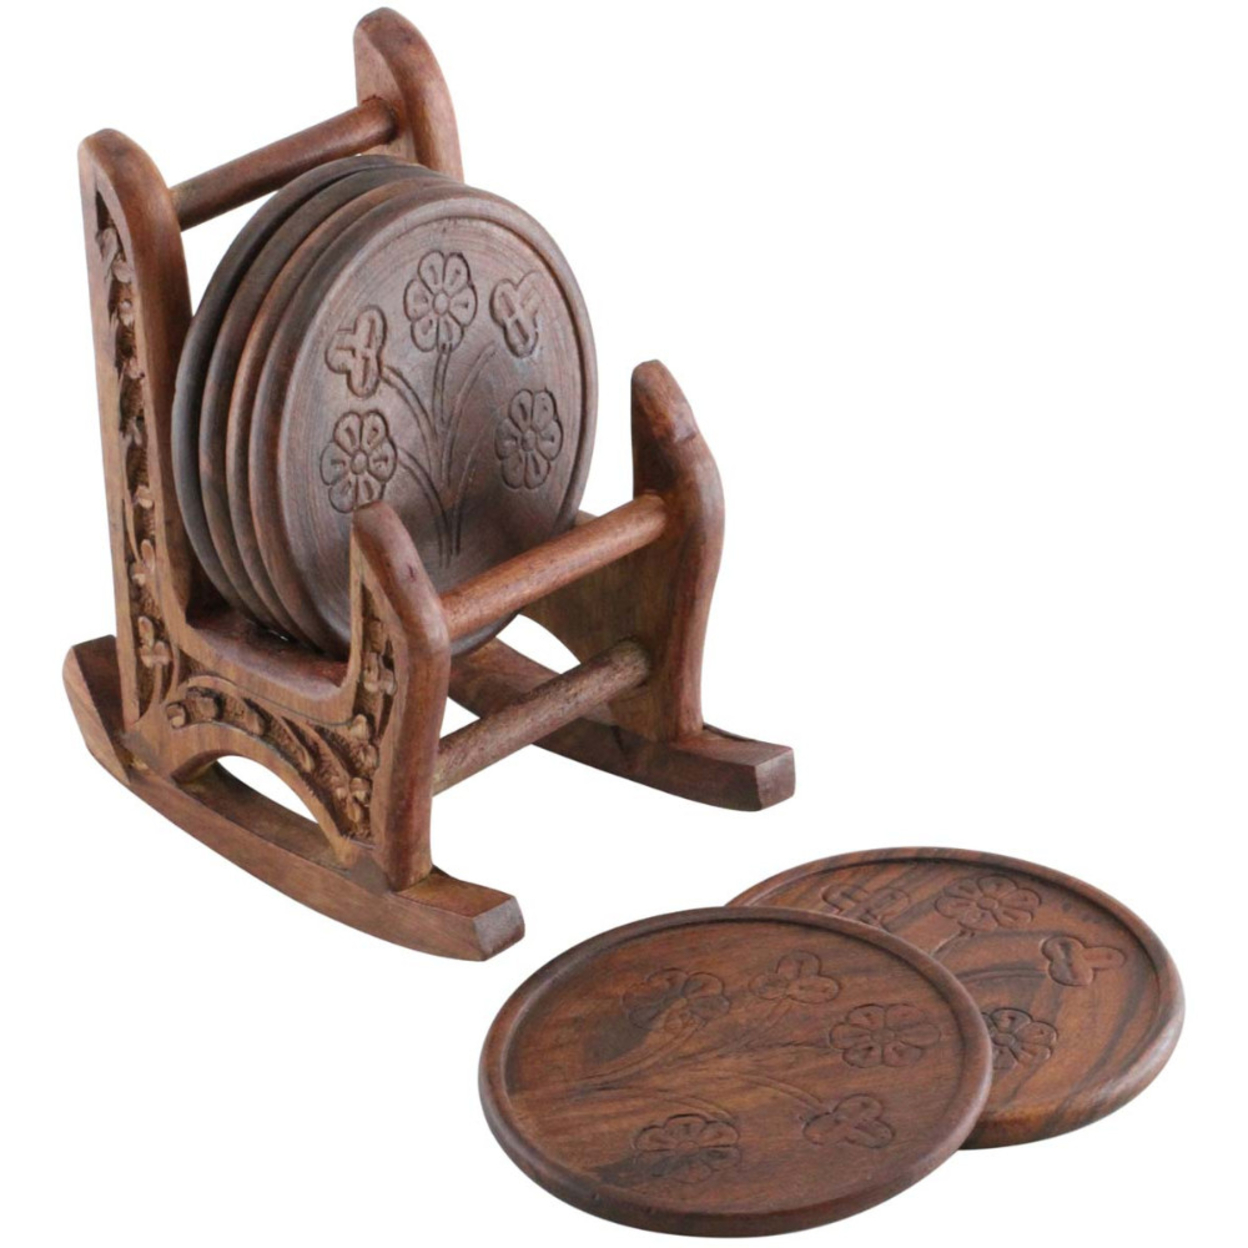 Handmade Coaster Set Of 6 With Rocking Chair Holder In Mango Wood Benzara Brand 5a421d482a00e42fa91cfba0